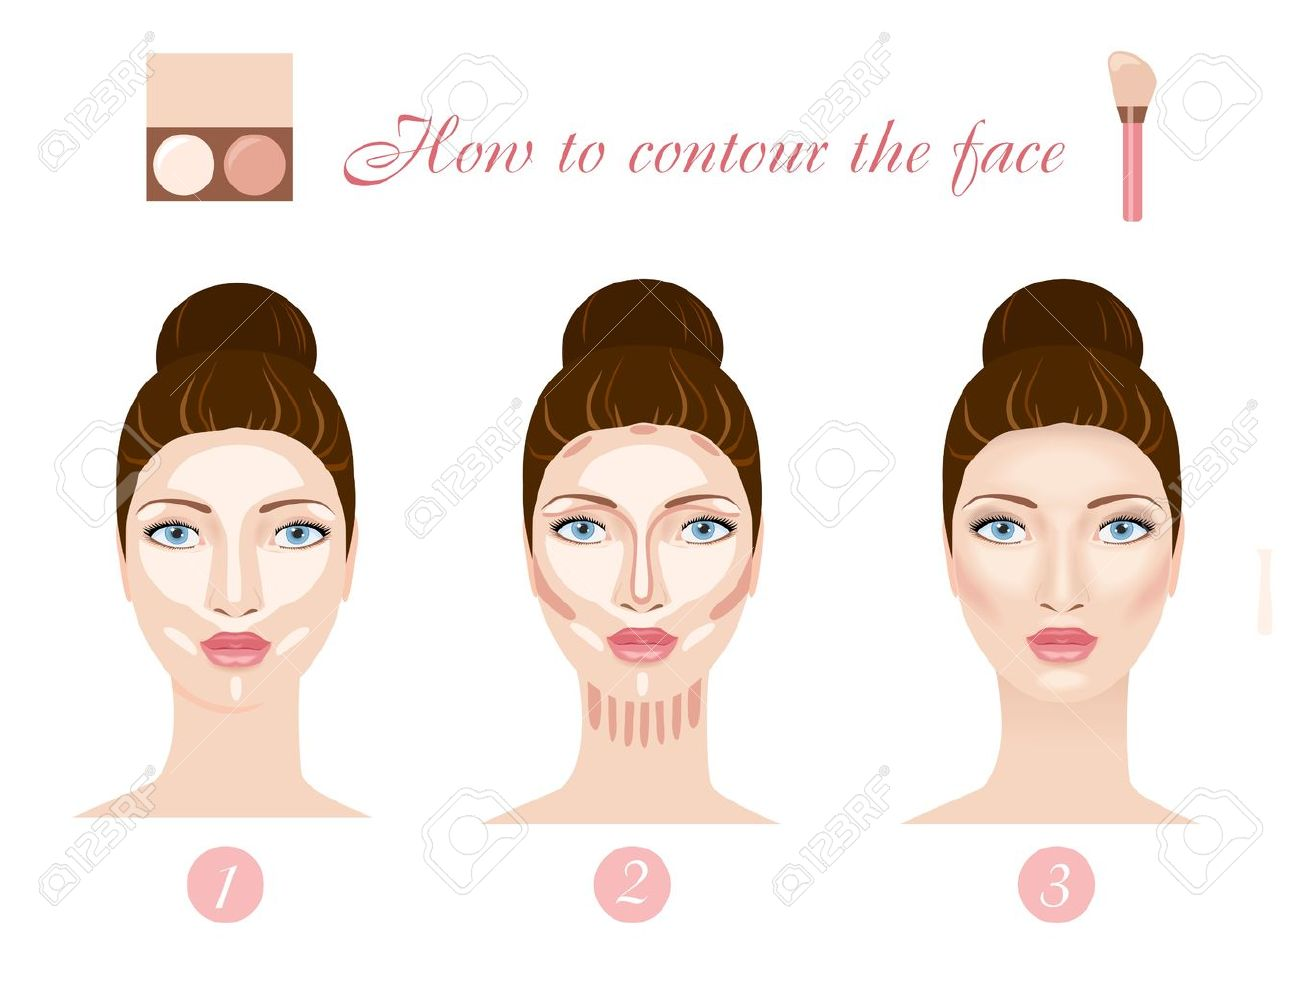 How To Contour Face Three Steps Of Professional Contouring: Highlight,  Contour And Blend